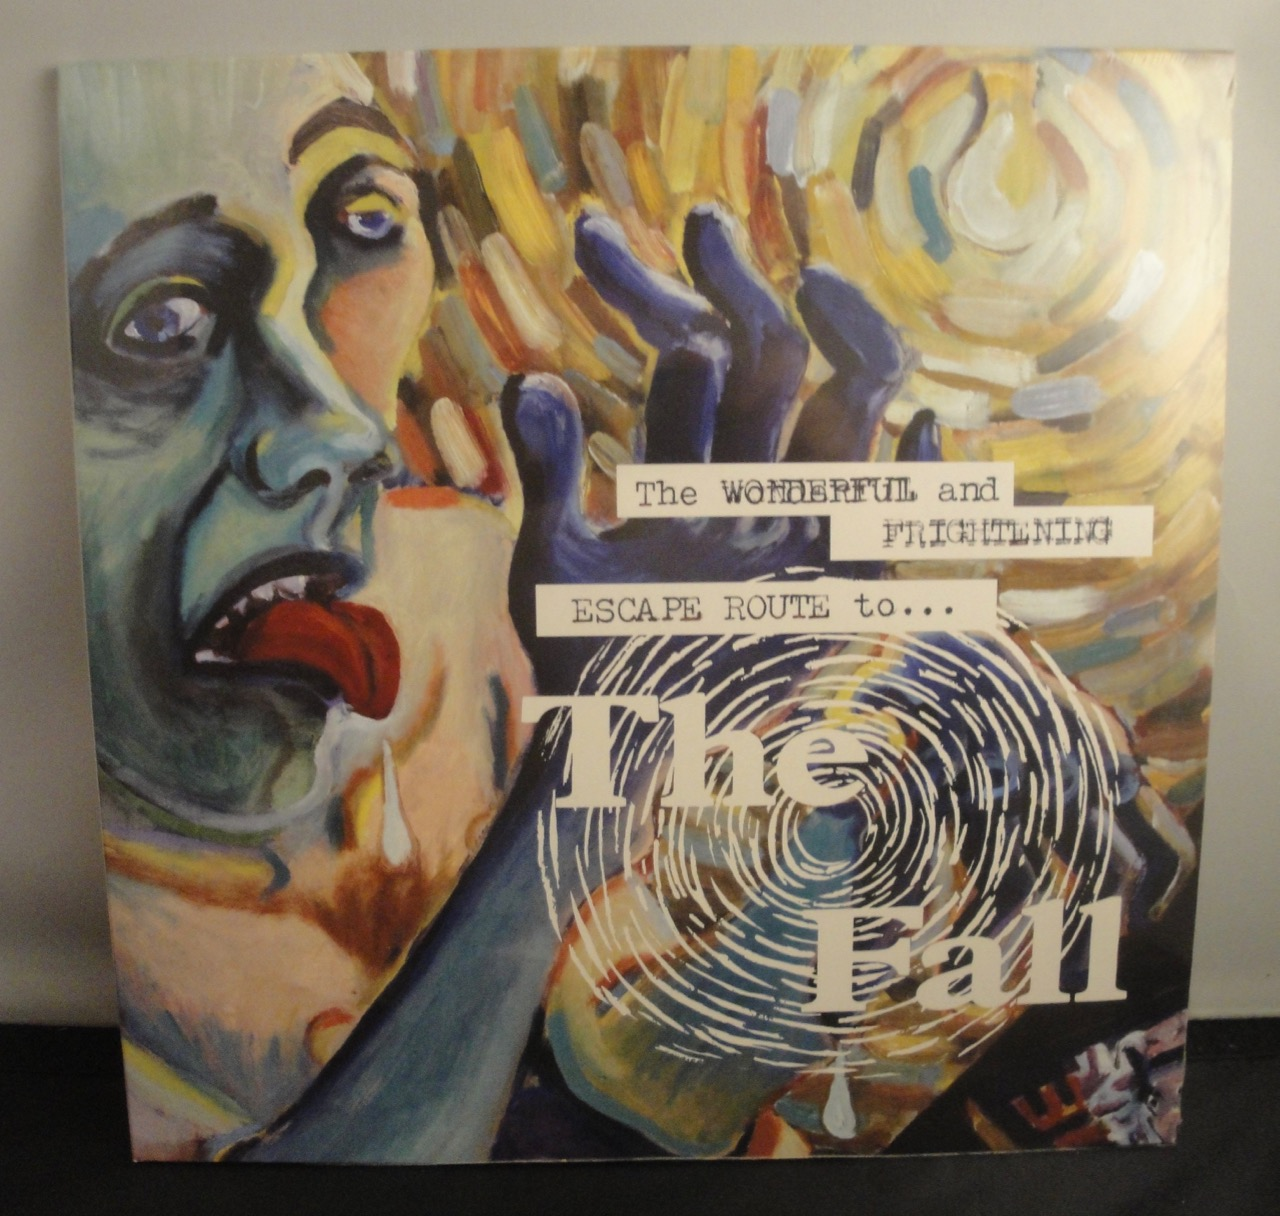 The Fall - The Wonderful and Frightening Escape Route To The Fall - Vinyl LP, 2015